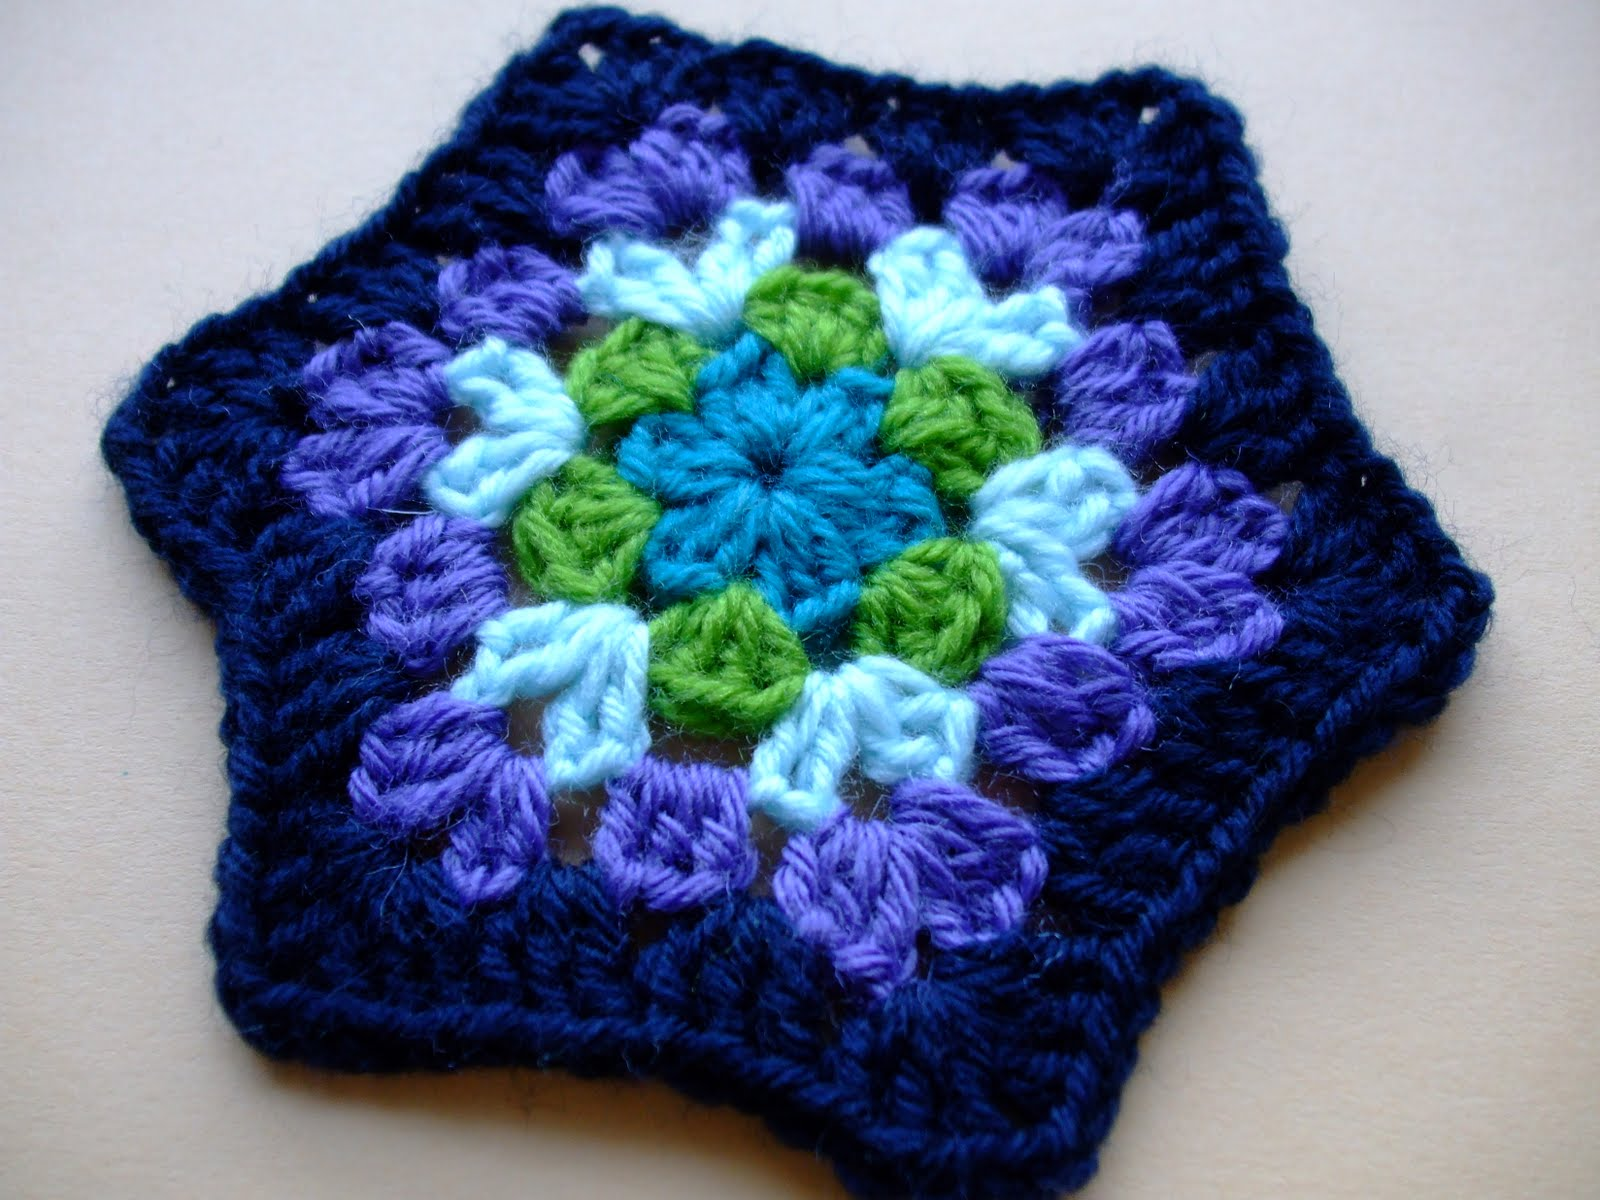 Crochet Patterns - Crochet Me